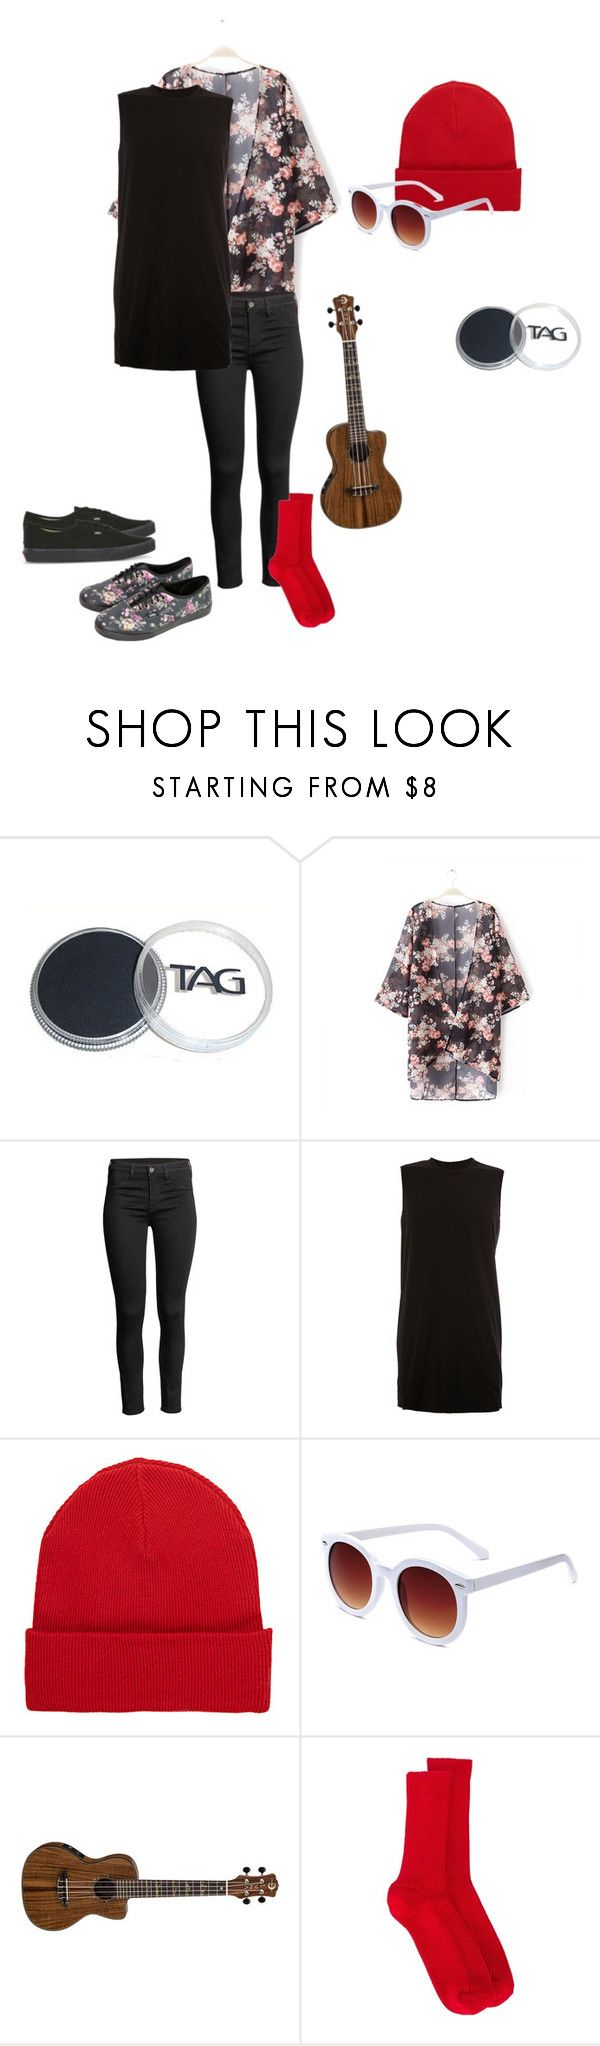 """Tyler Joseph - Kimono Outfit"" by twenty-one-pilots-outfits ❤ liked on Polyvore featuring Vans, DRKSHDW, rag & bone, Isabel Marant, grunge, twentyonepilots and tylerjoseph"